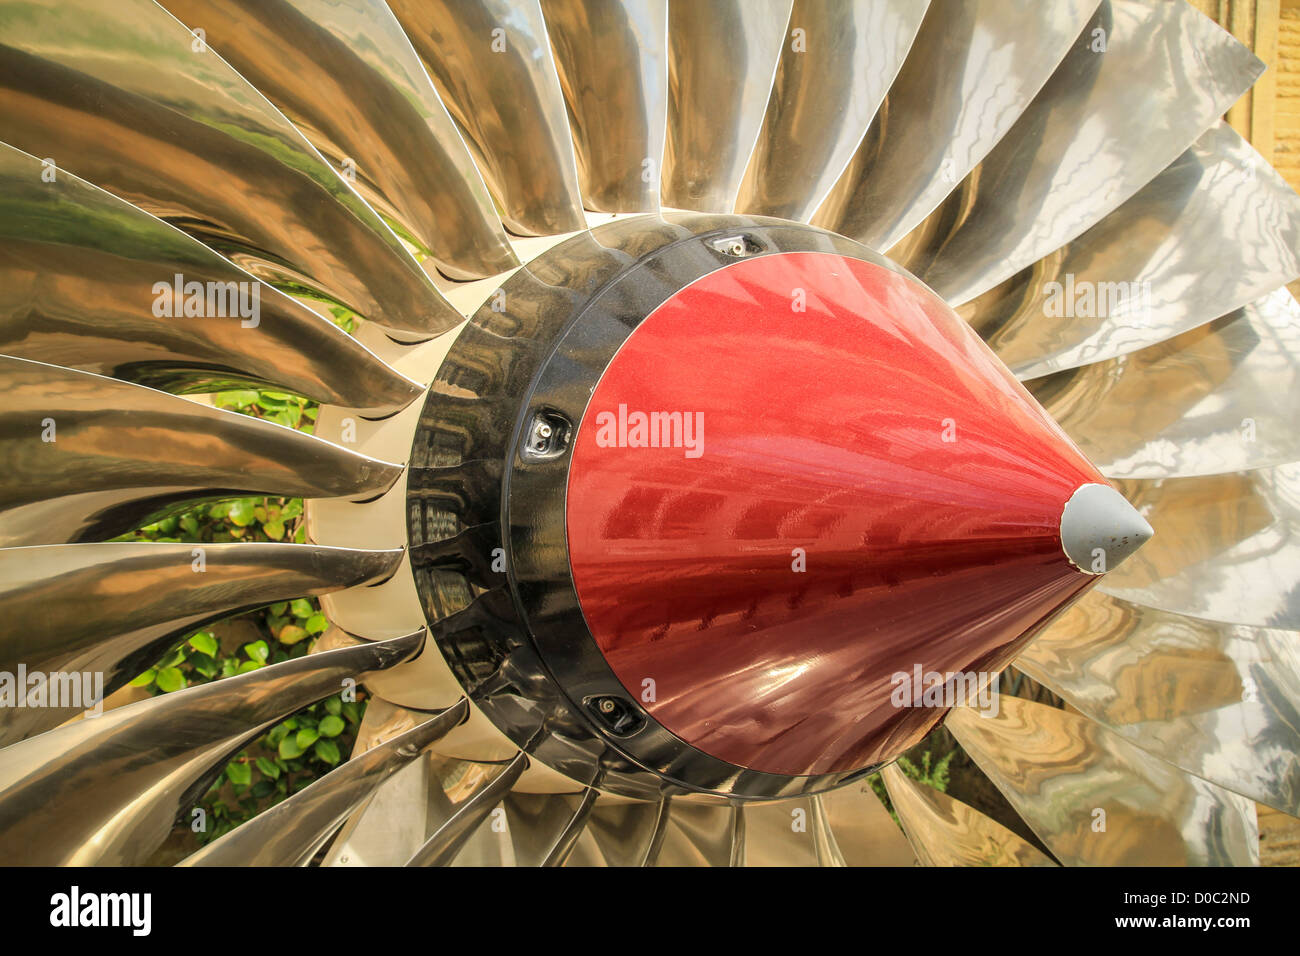 Jet Engine Fan - Stock Image